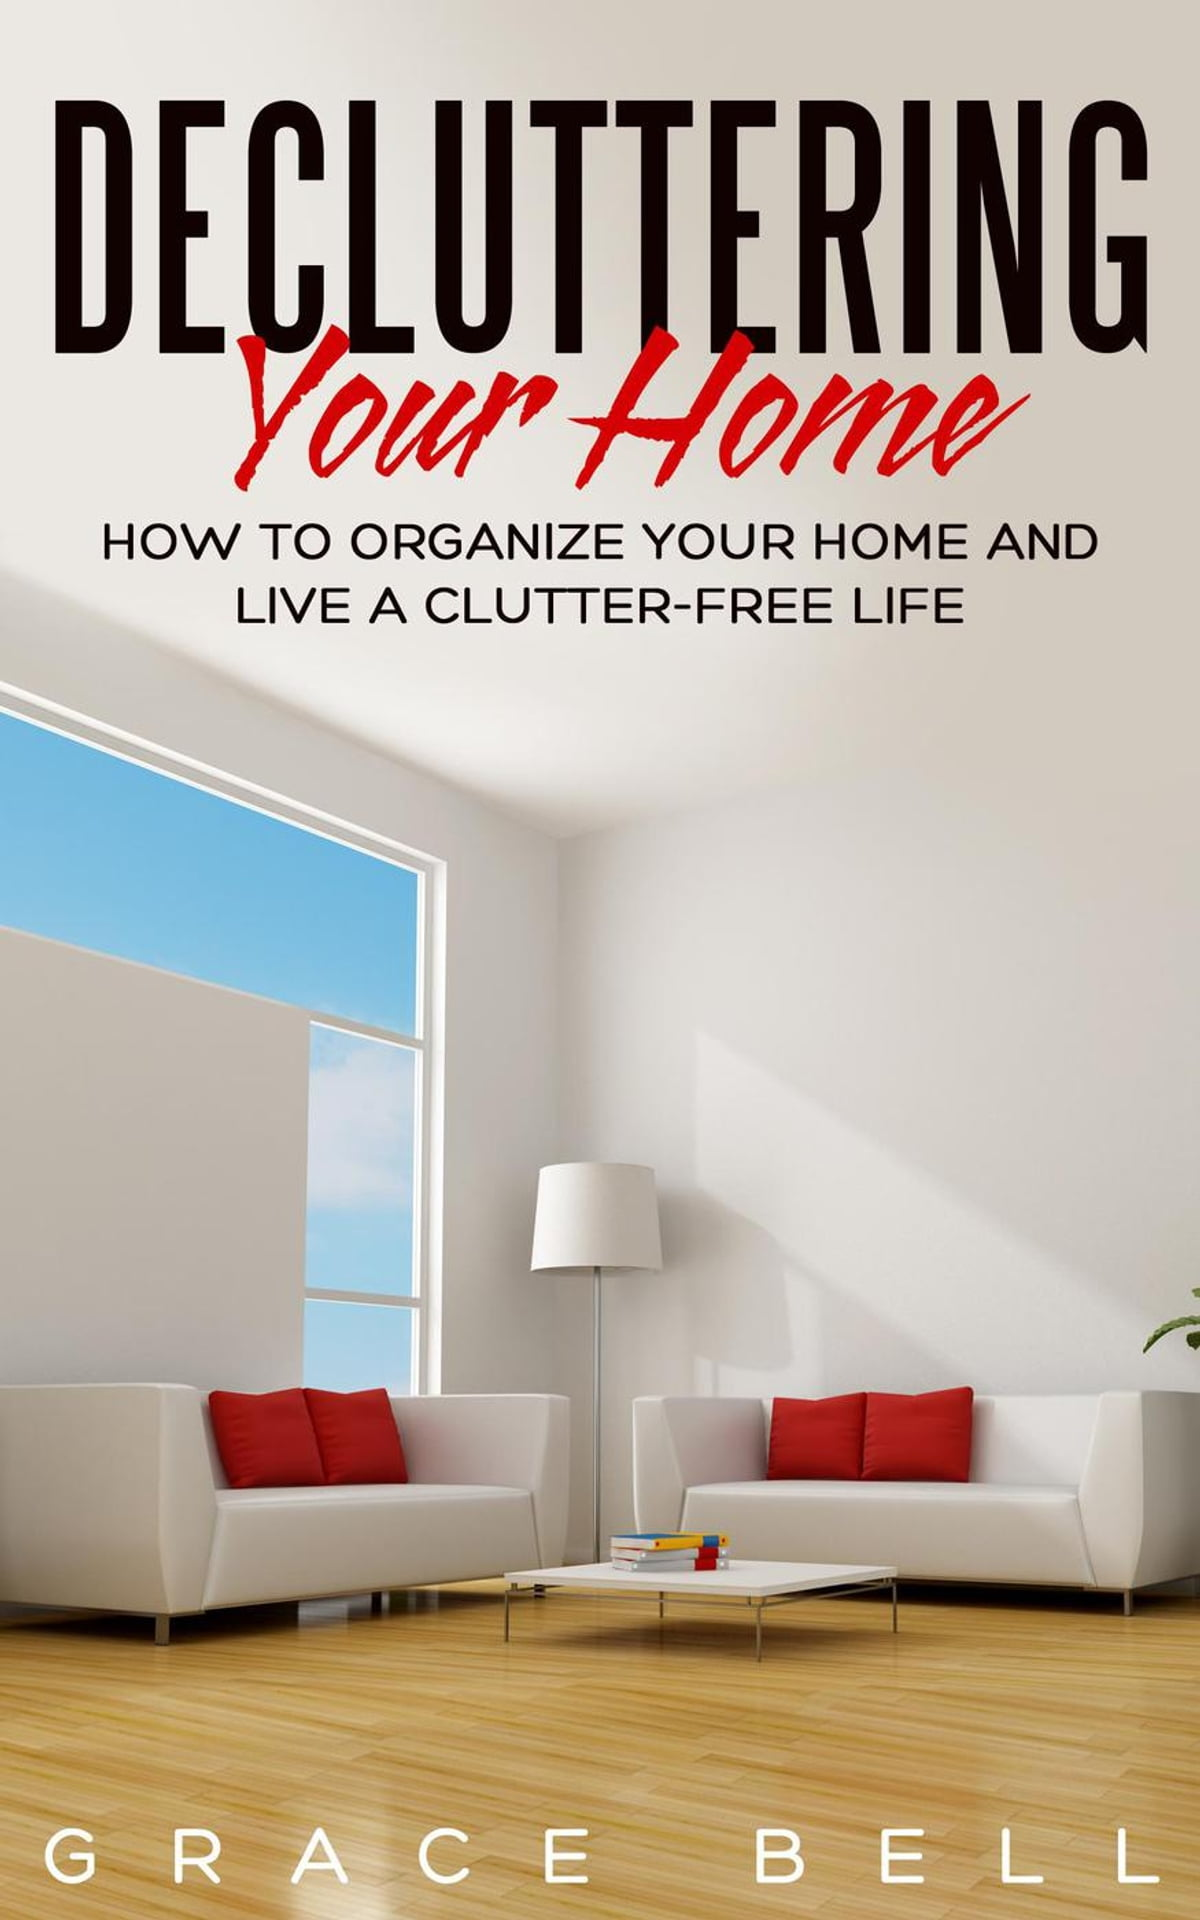 Decluttering Your Home: How to Organize Your Home and Live a Clutter-Free  Life eBook by Grace Bell - 9781386929567 | Rakuten Kobo